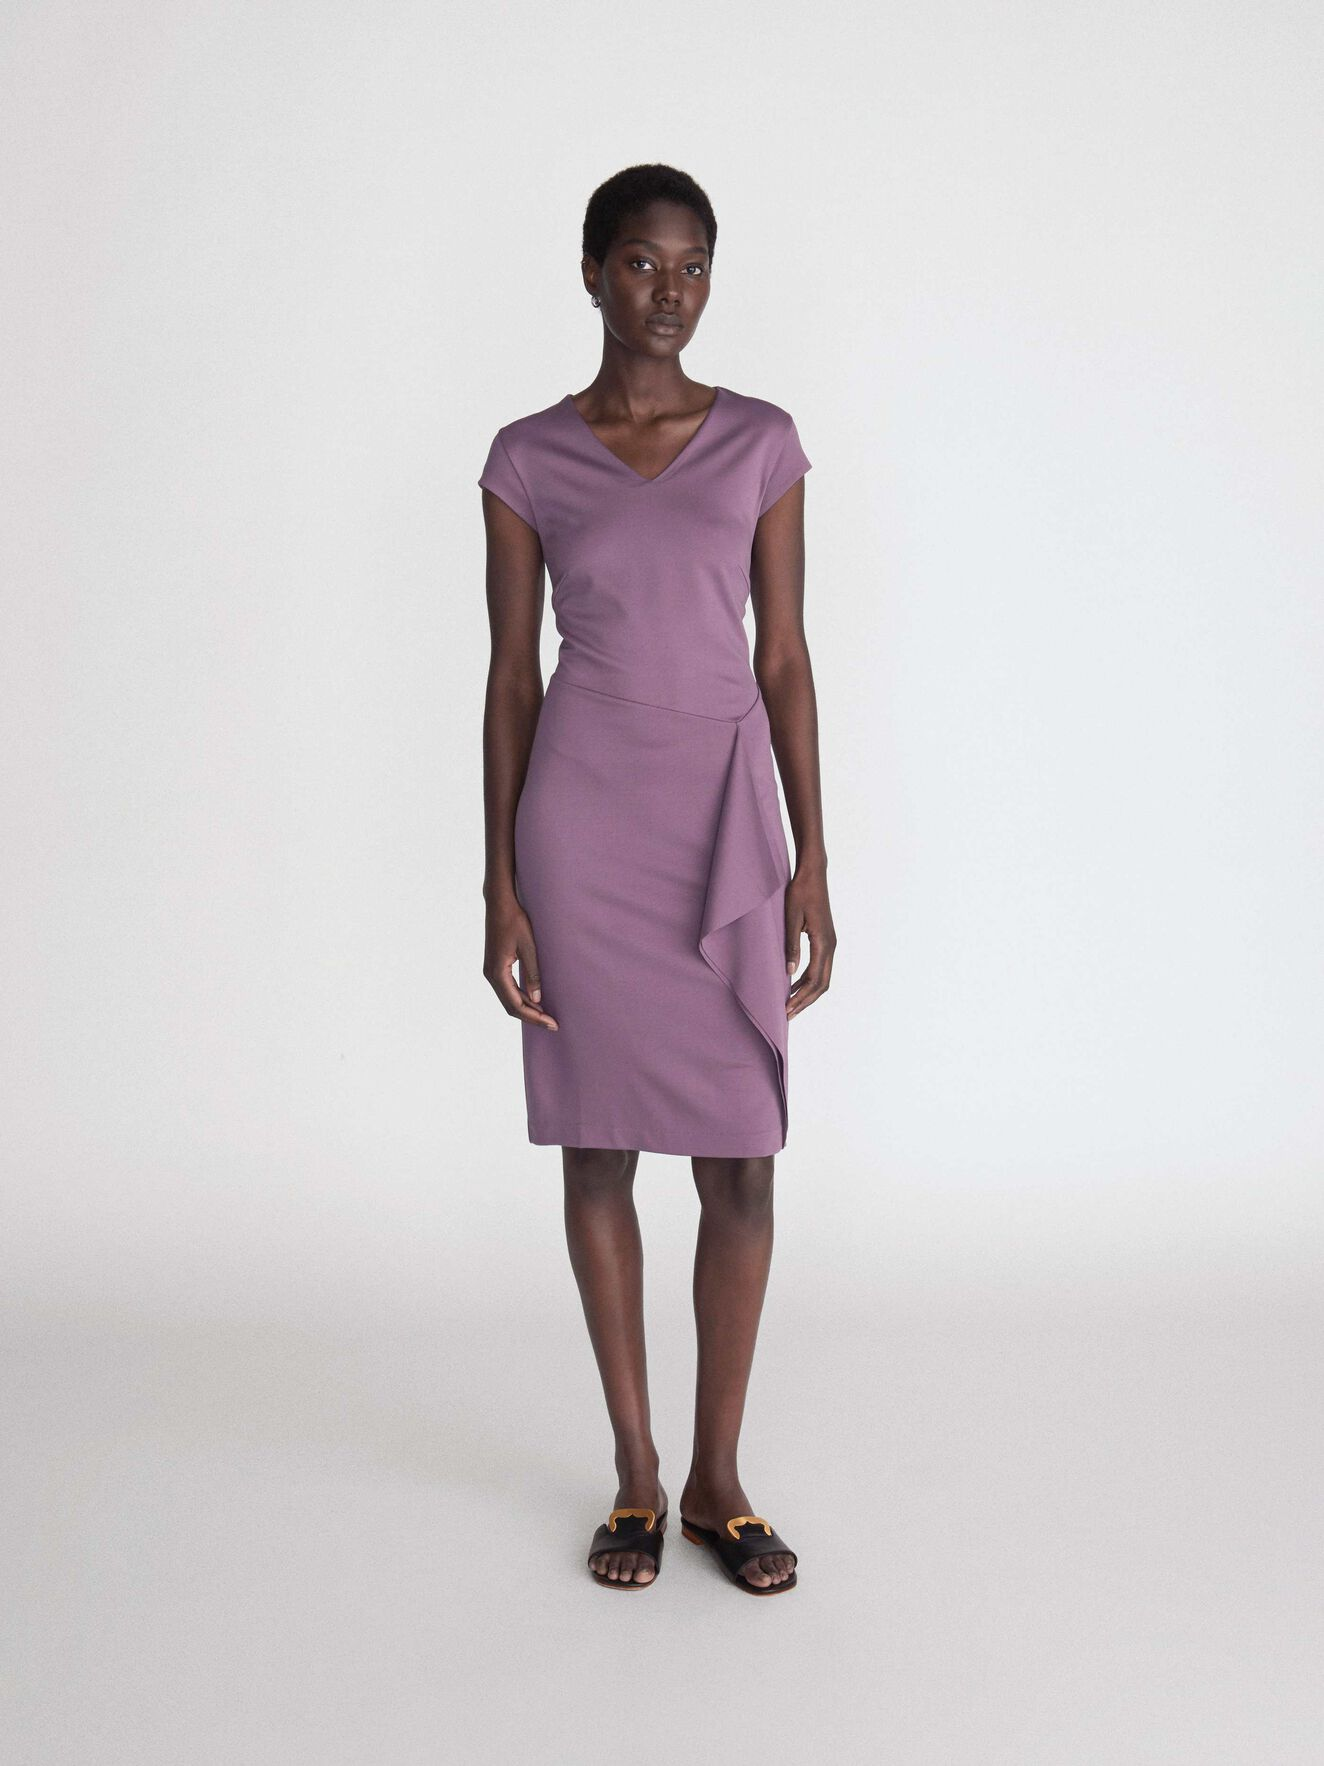 Amethyste Dress in Light Grape from Tiger of Sweden